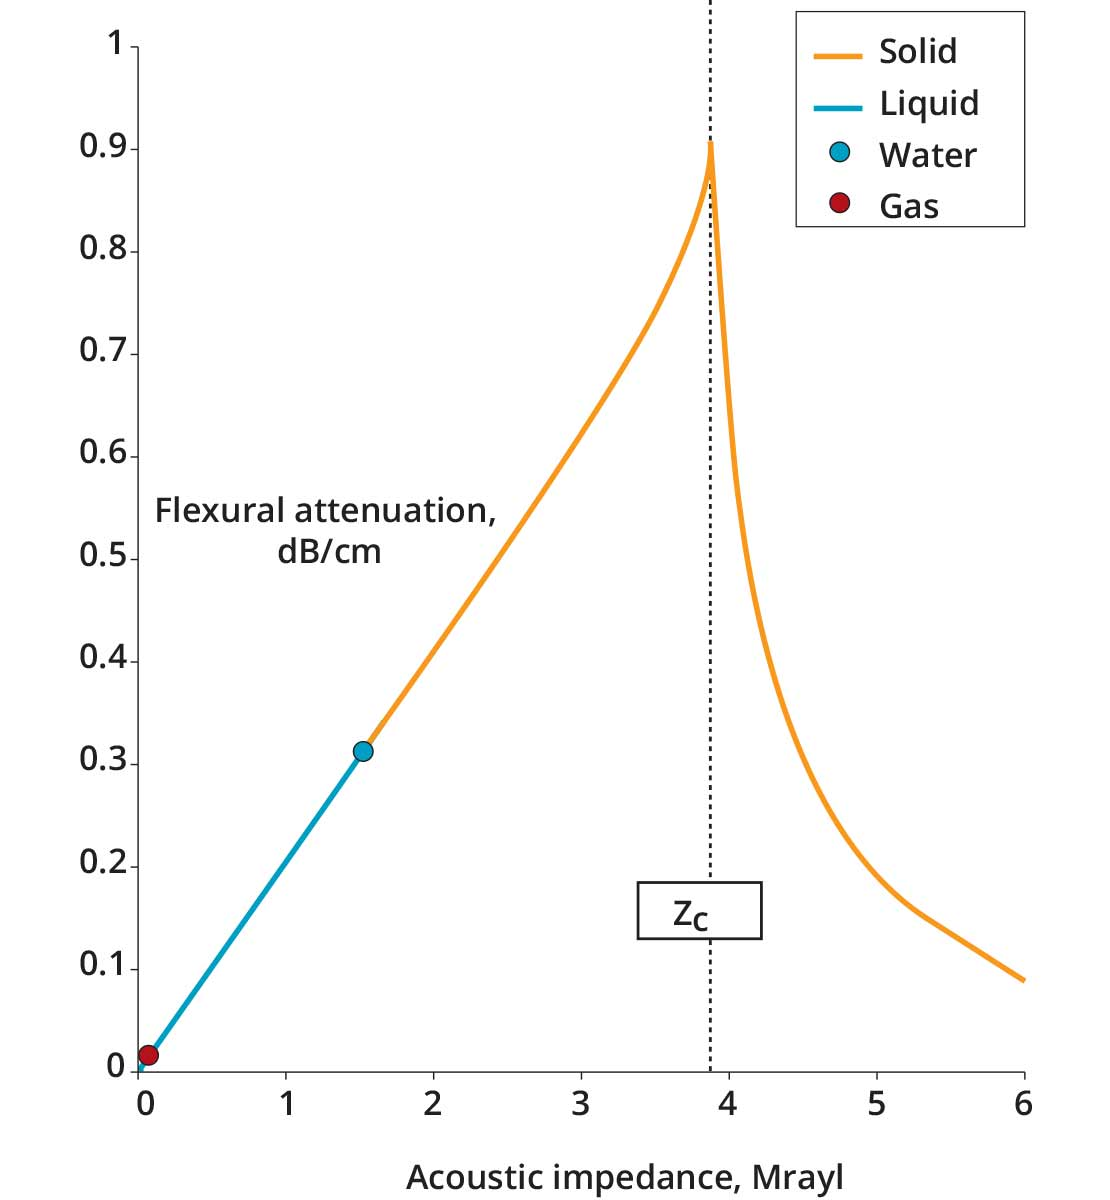 Flexural wave attenuation of a well-bonded cement